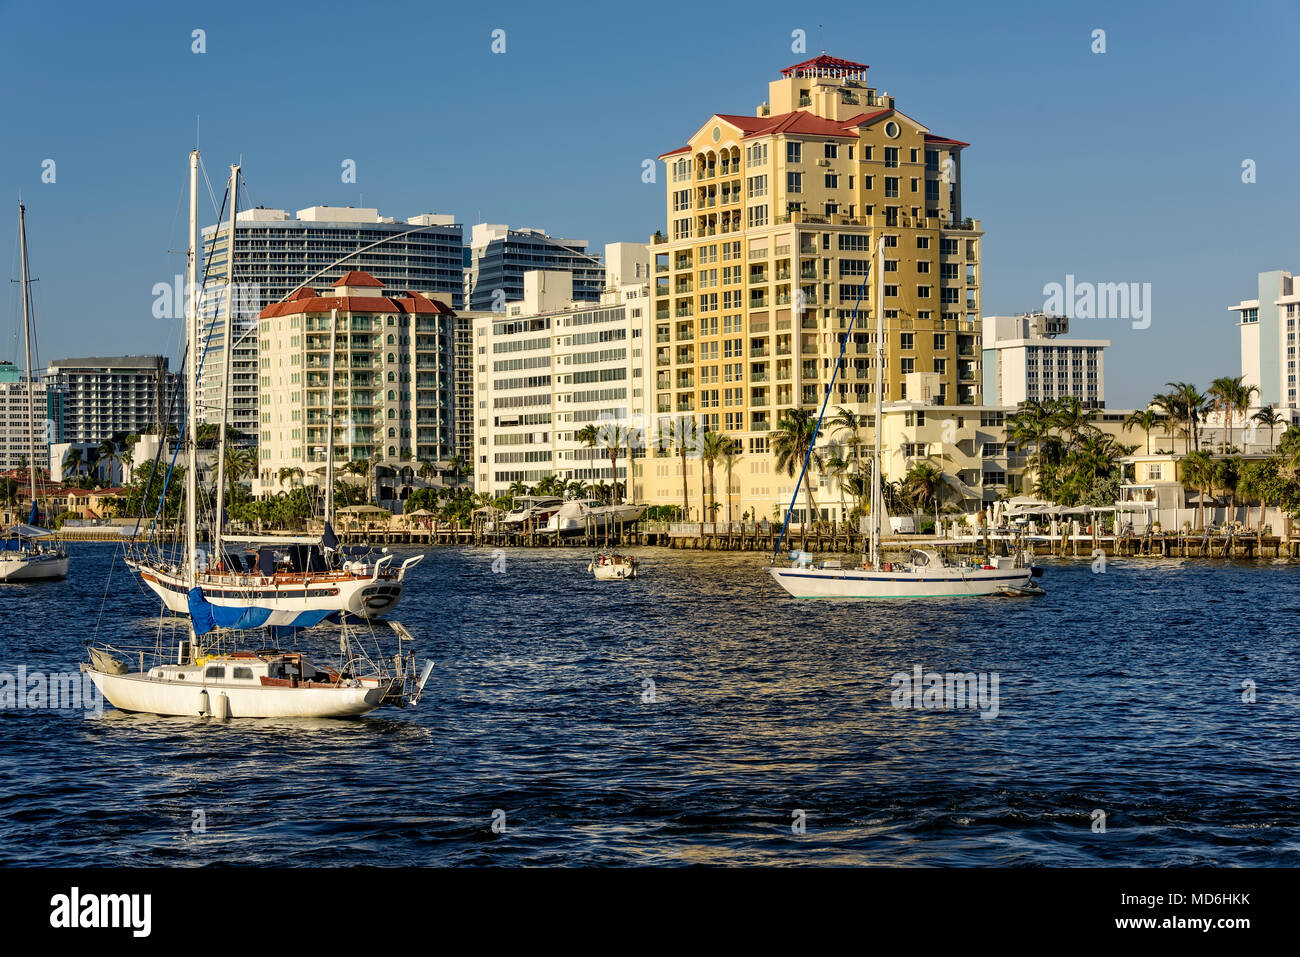 Highrise buildings and boats on the intercoastal waterway in Fort Lauderdale, Florida Stock Photo